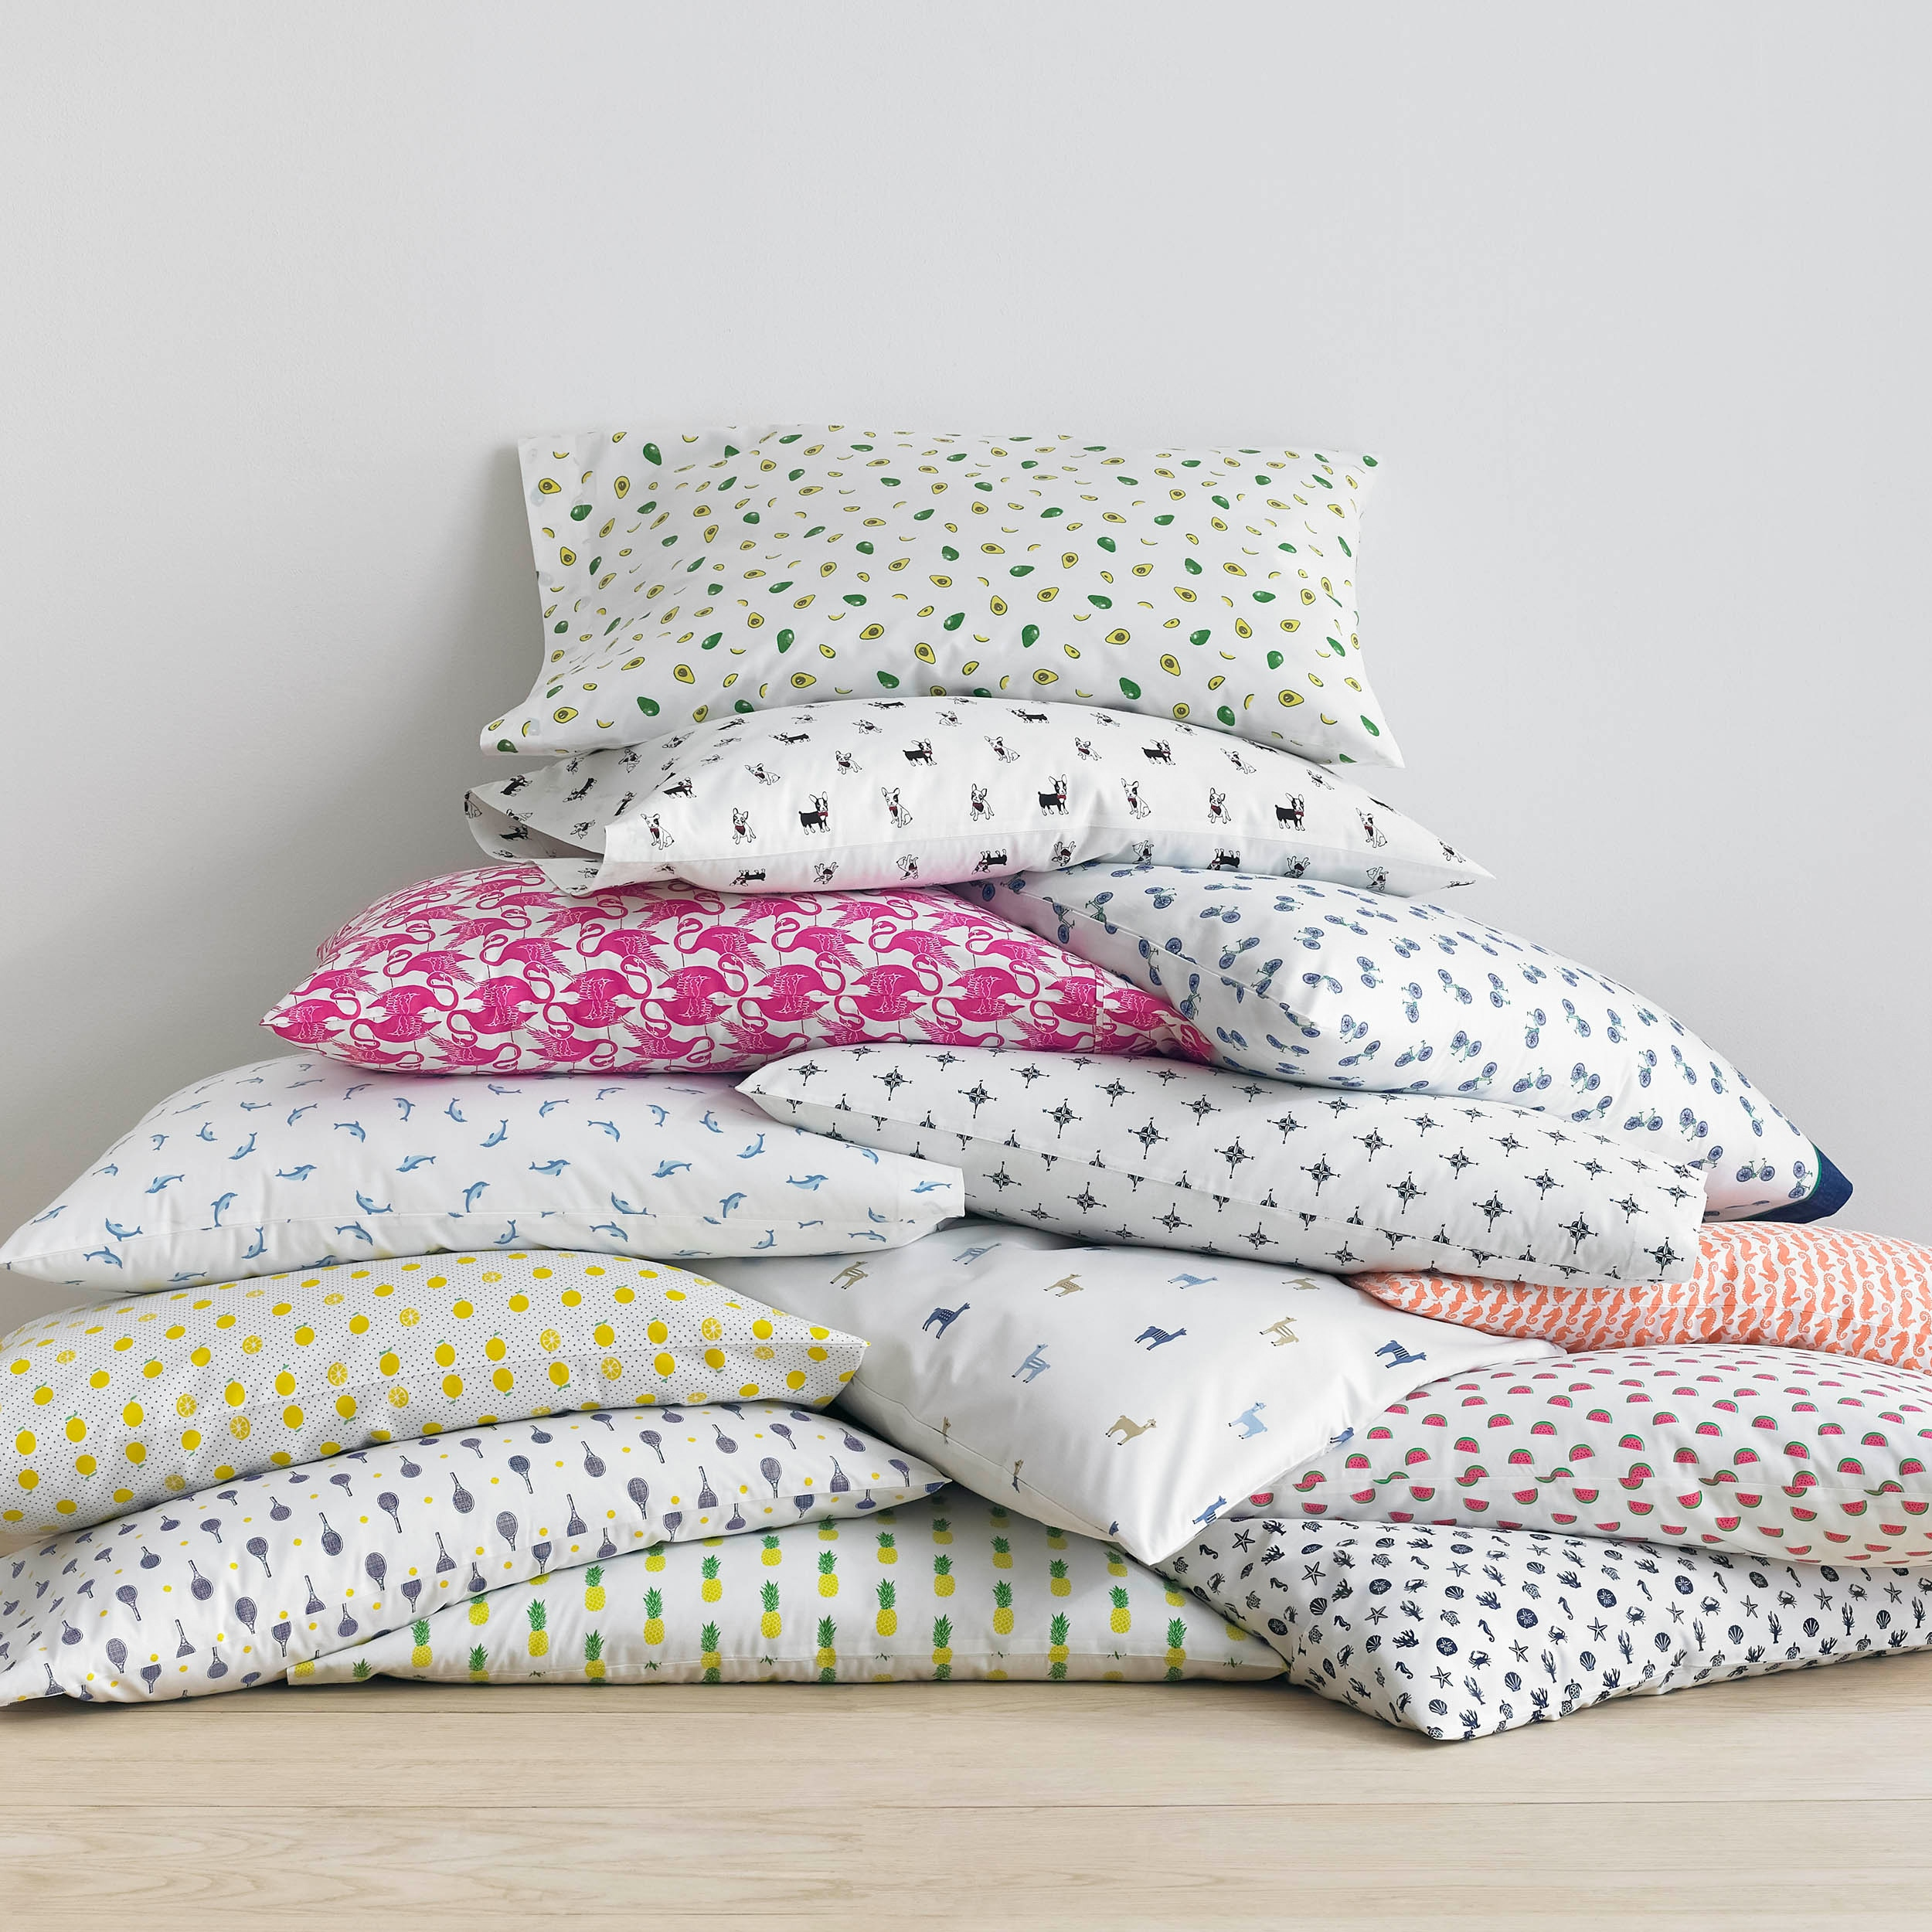 Shop Poppy U0026 Fritz Cotton Percale Printed Sheet Sets   Free Shipping On  Orders Over $45   Overstock.com   11601405